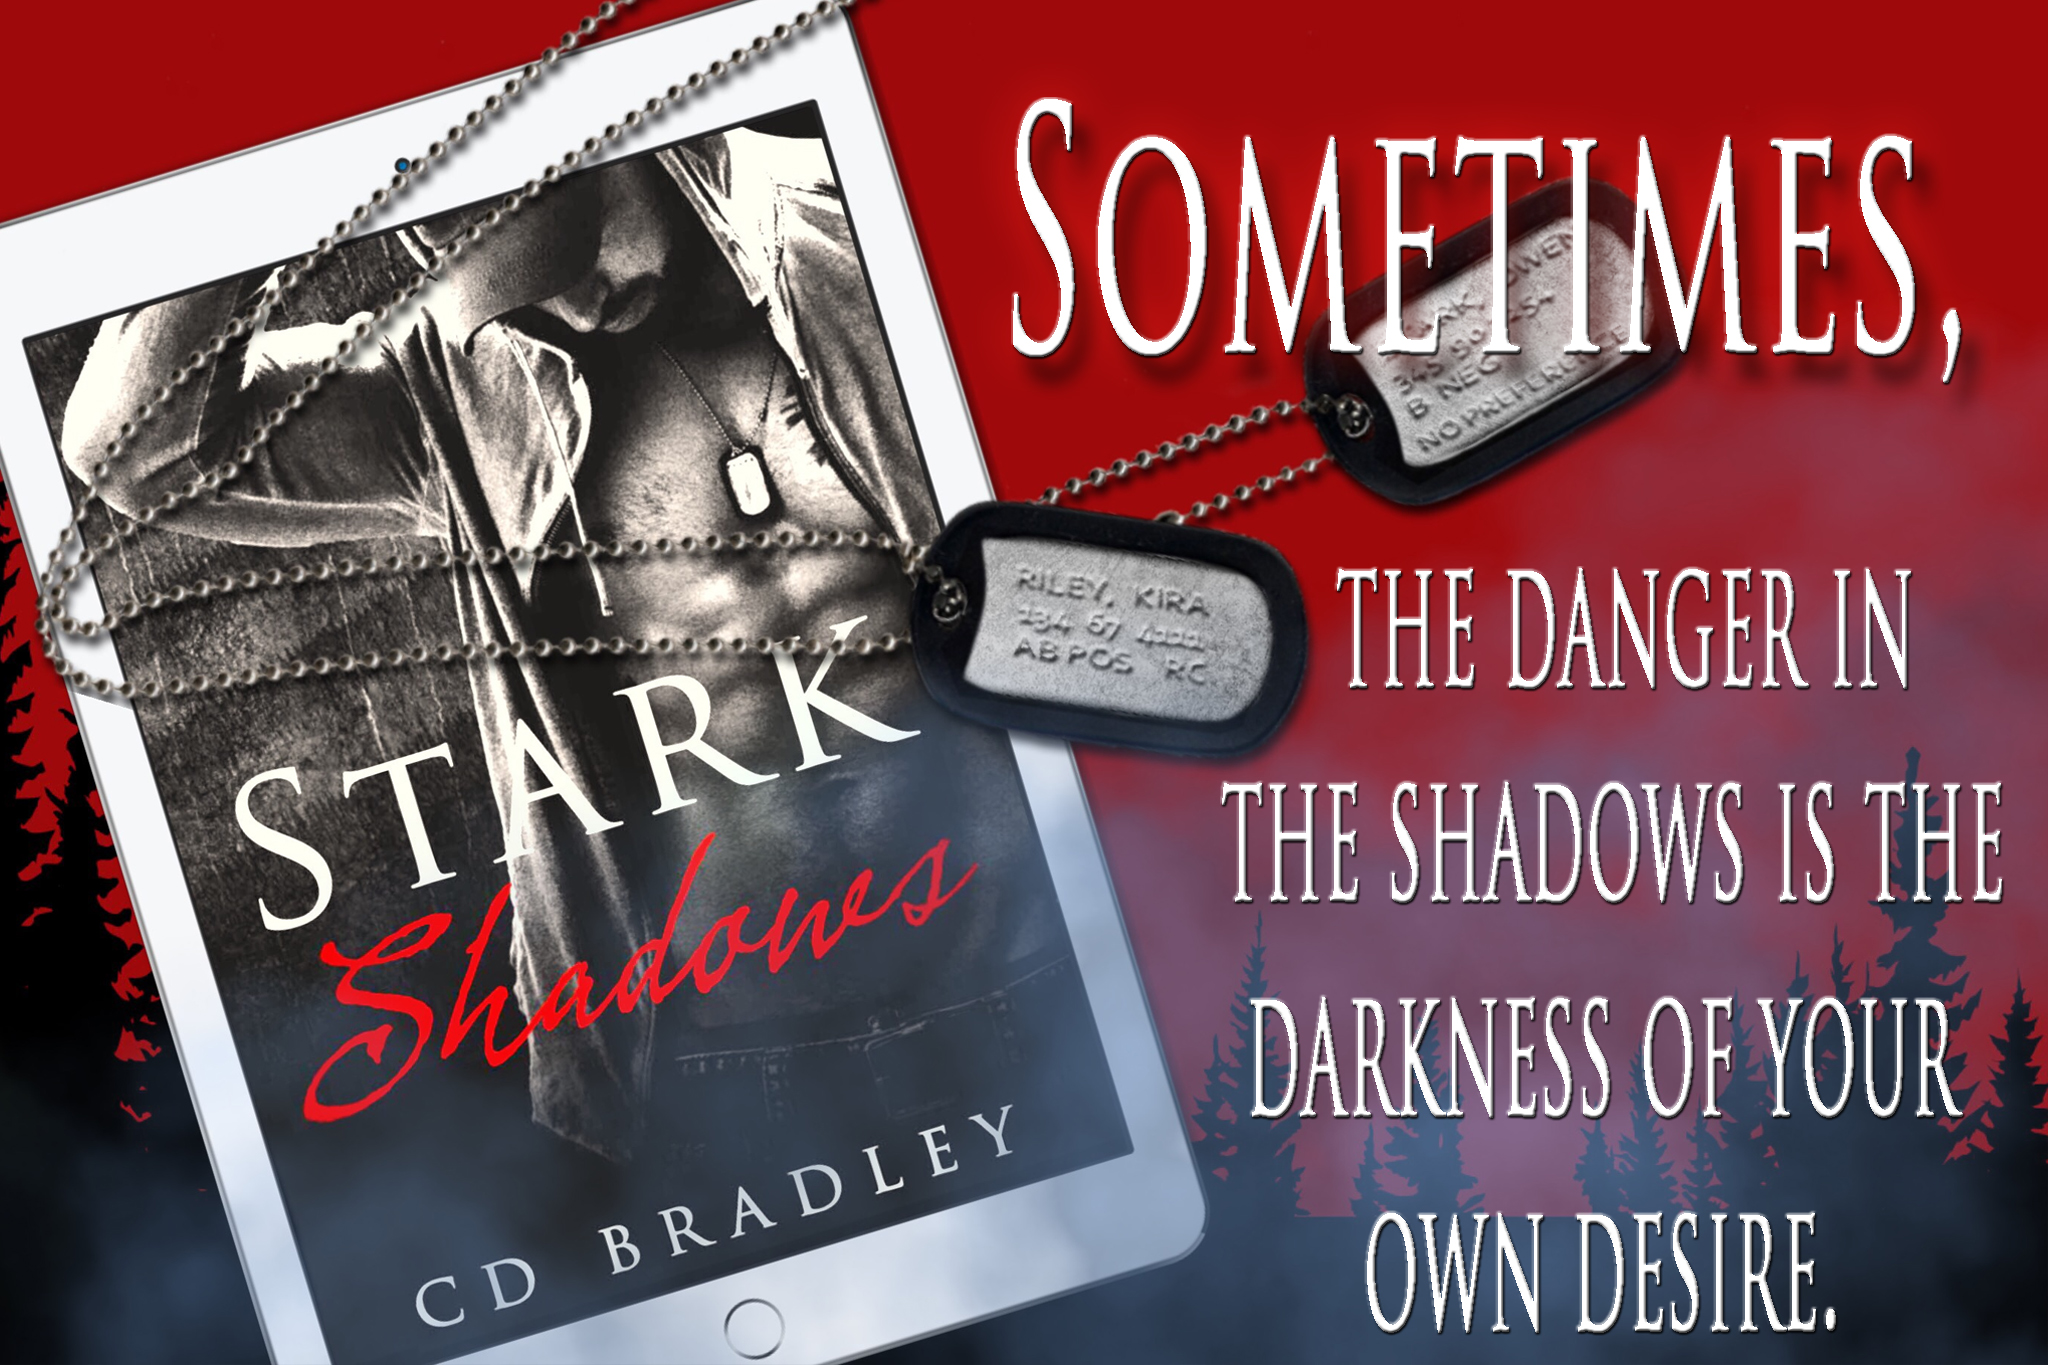 Stark Shadows (CD Bradley)